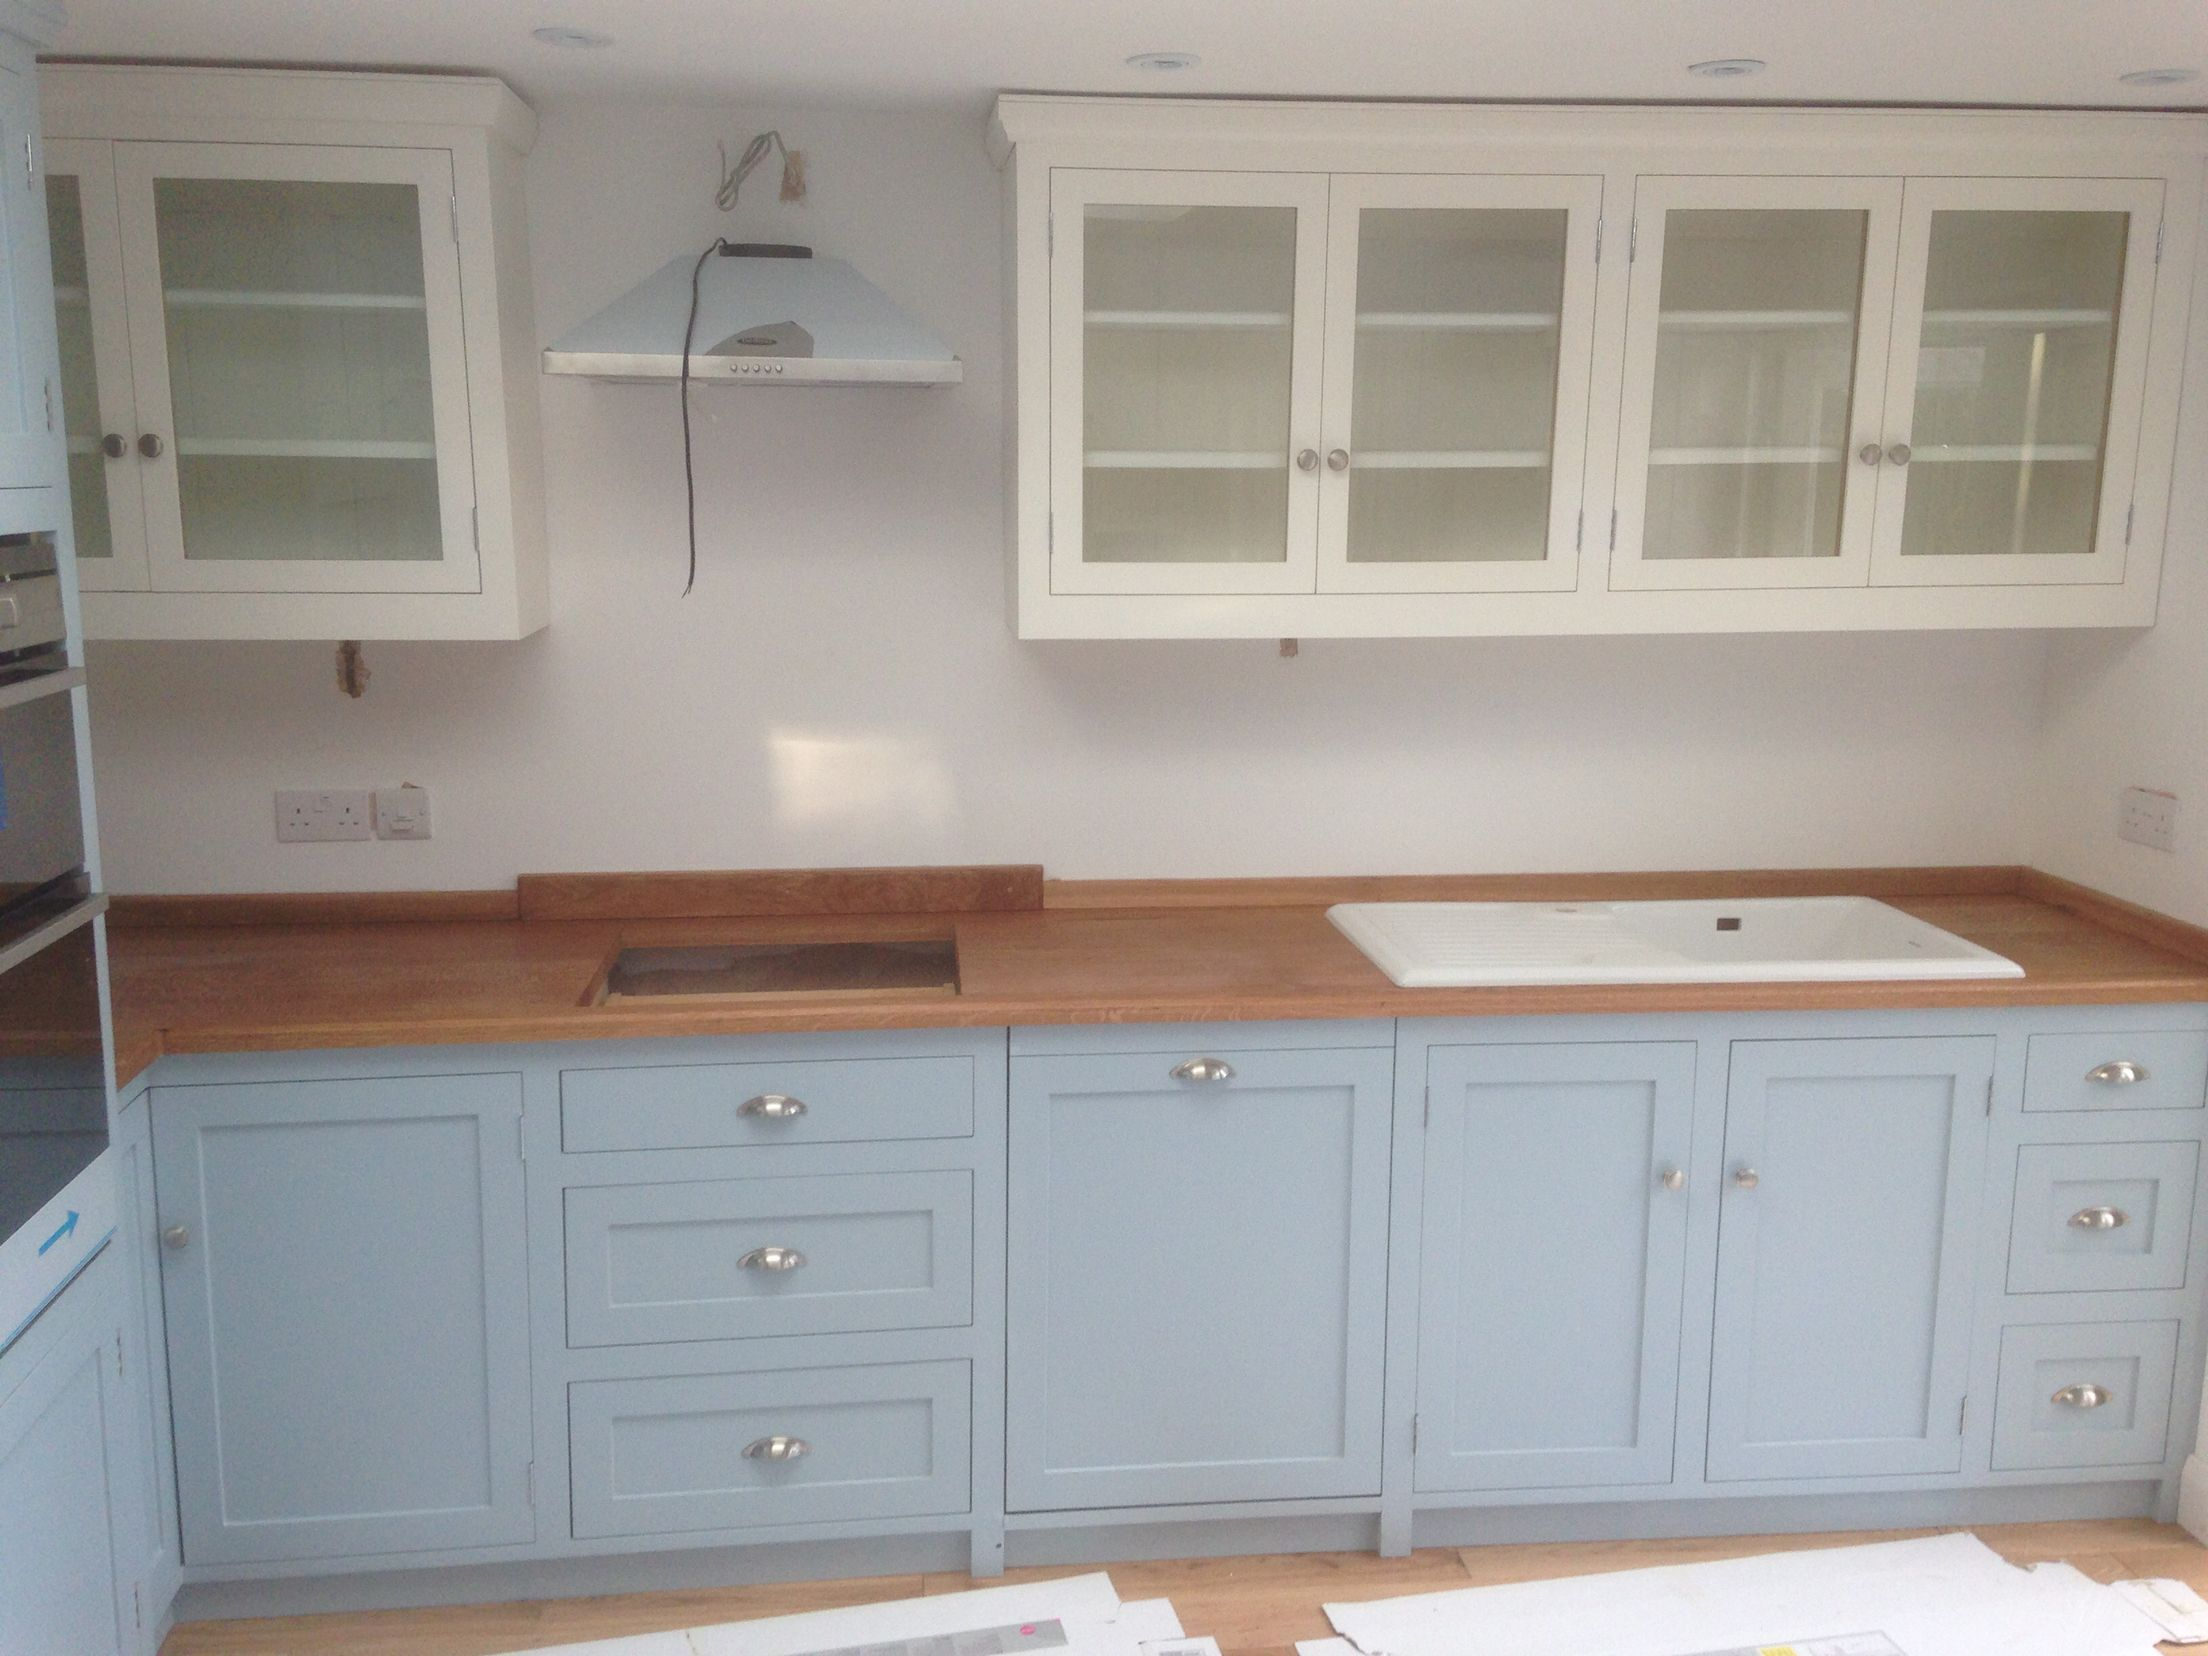 Features Parma Grey Base Units And Strong White Glazed Wall Units Handmade Kitchens Bespoke Kitchens Kitchen Cabinet Design Kitchen Cabinets Kitchen Design